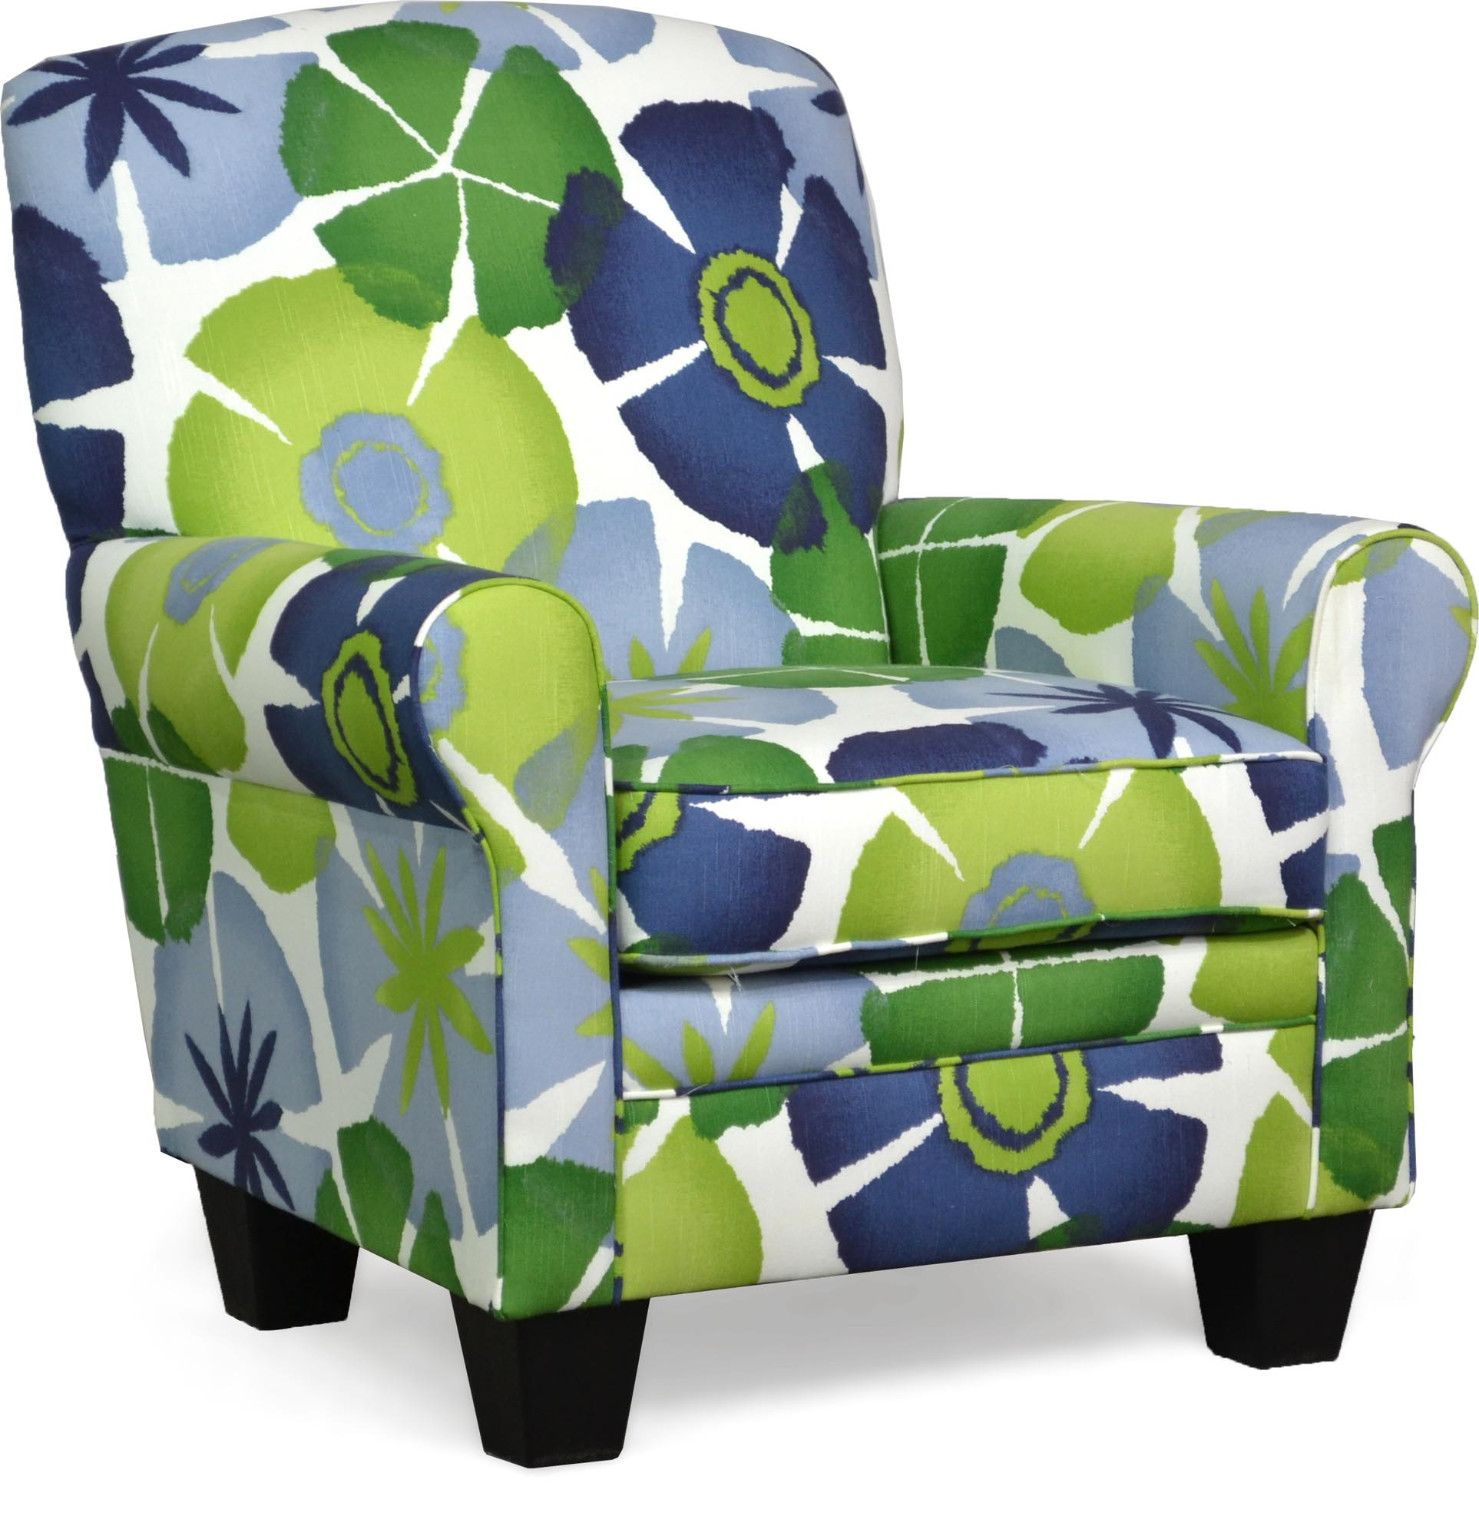 Quinn Accent Chair In Pure Petals Leaf Transitional Style Round Arms Tight Back Cushion Removab Accent Chairs Ashley Furniture Chairs Upholstered Chairs